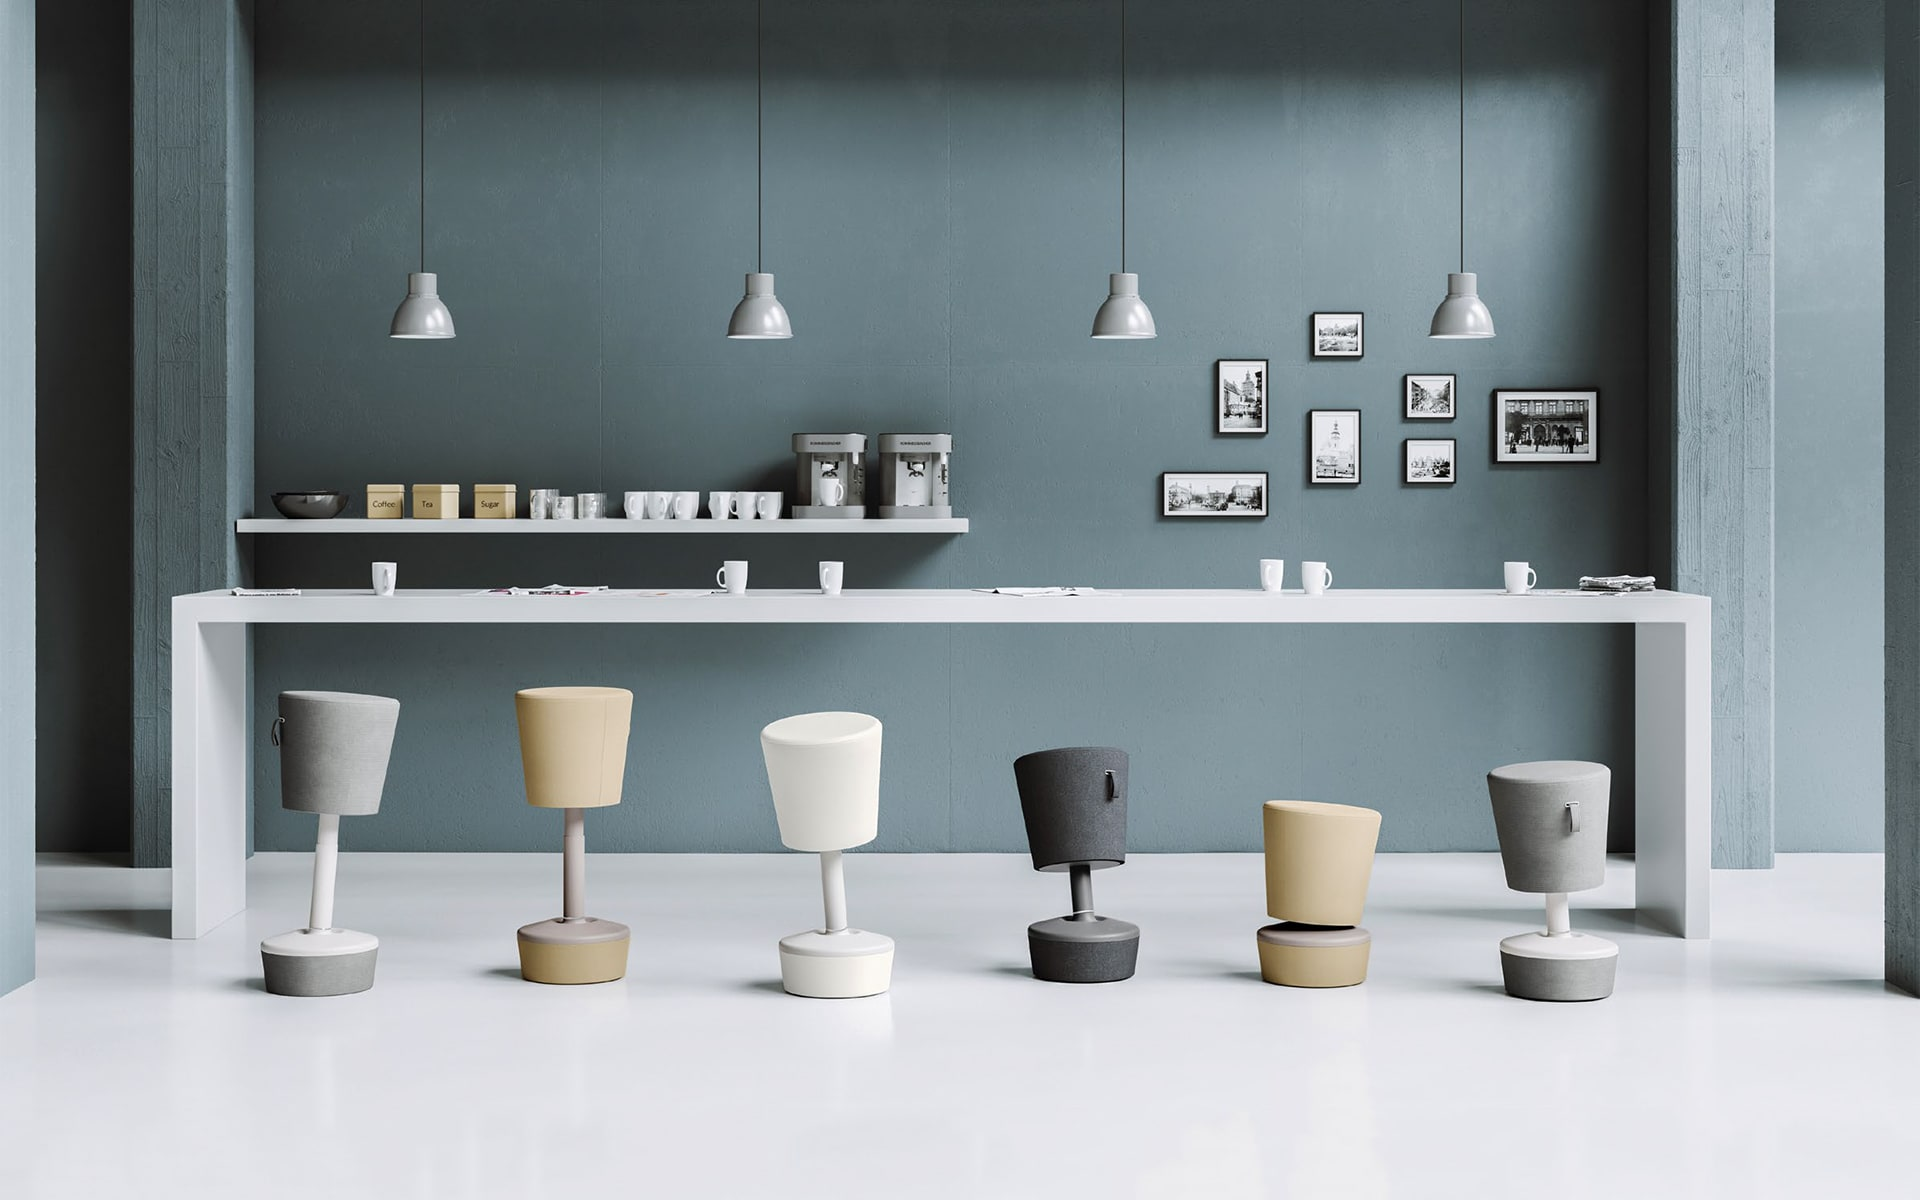 Profim Mickey office stools by ITO Design in black, white, gray and beige at modern group workplace